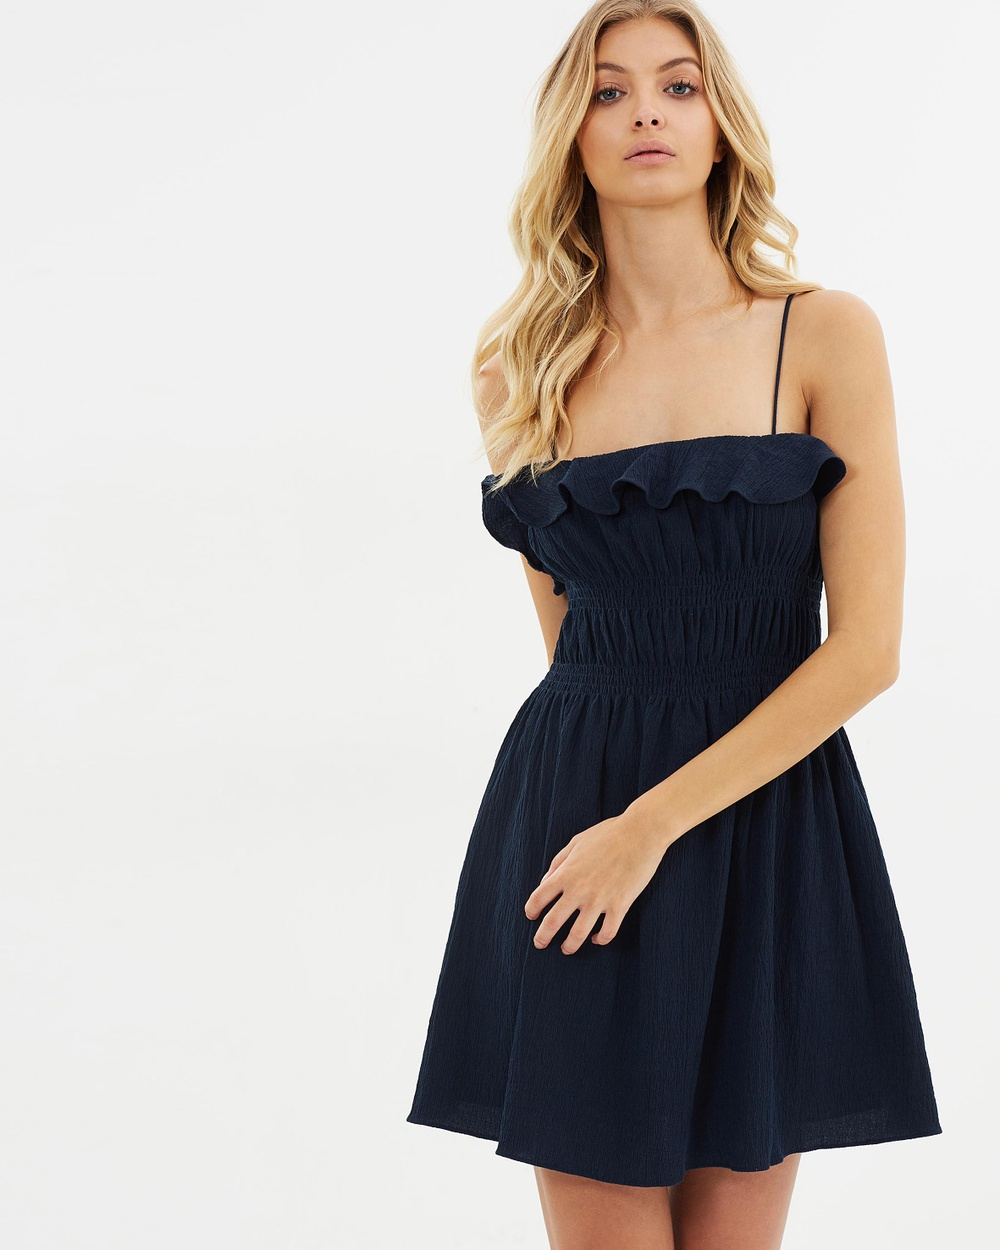 Atmos & Here ICONIC EXCLUSIVE Rita Textured Midi Dress Dresses Navy ICONIC EXCLUSIVE Rita Textured Midi Dress